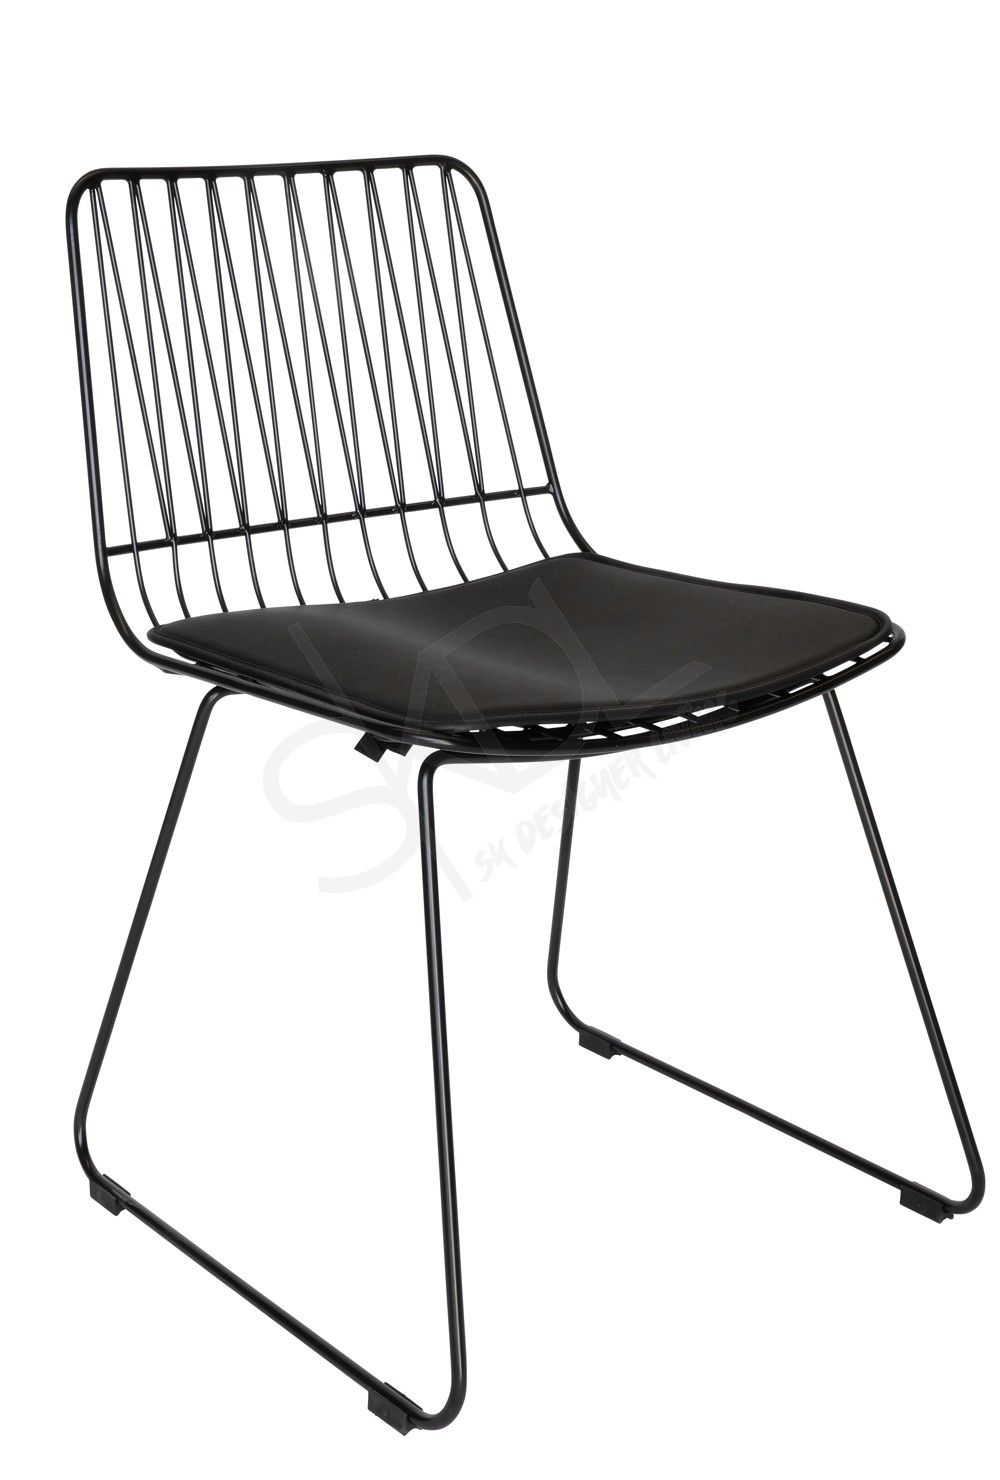 Lory Bend Wire Chair Wire Dining Chairs Chair Outdoor Dining